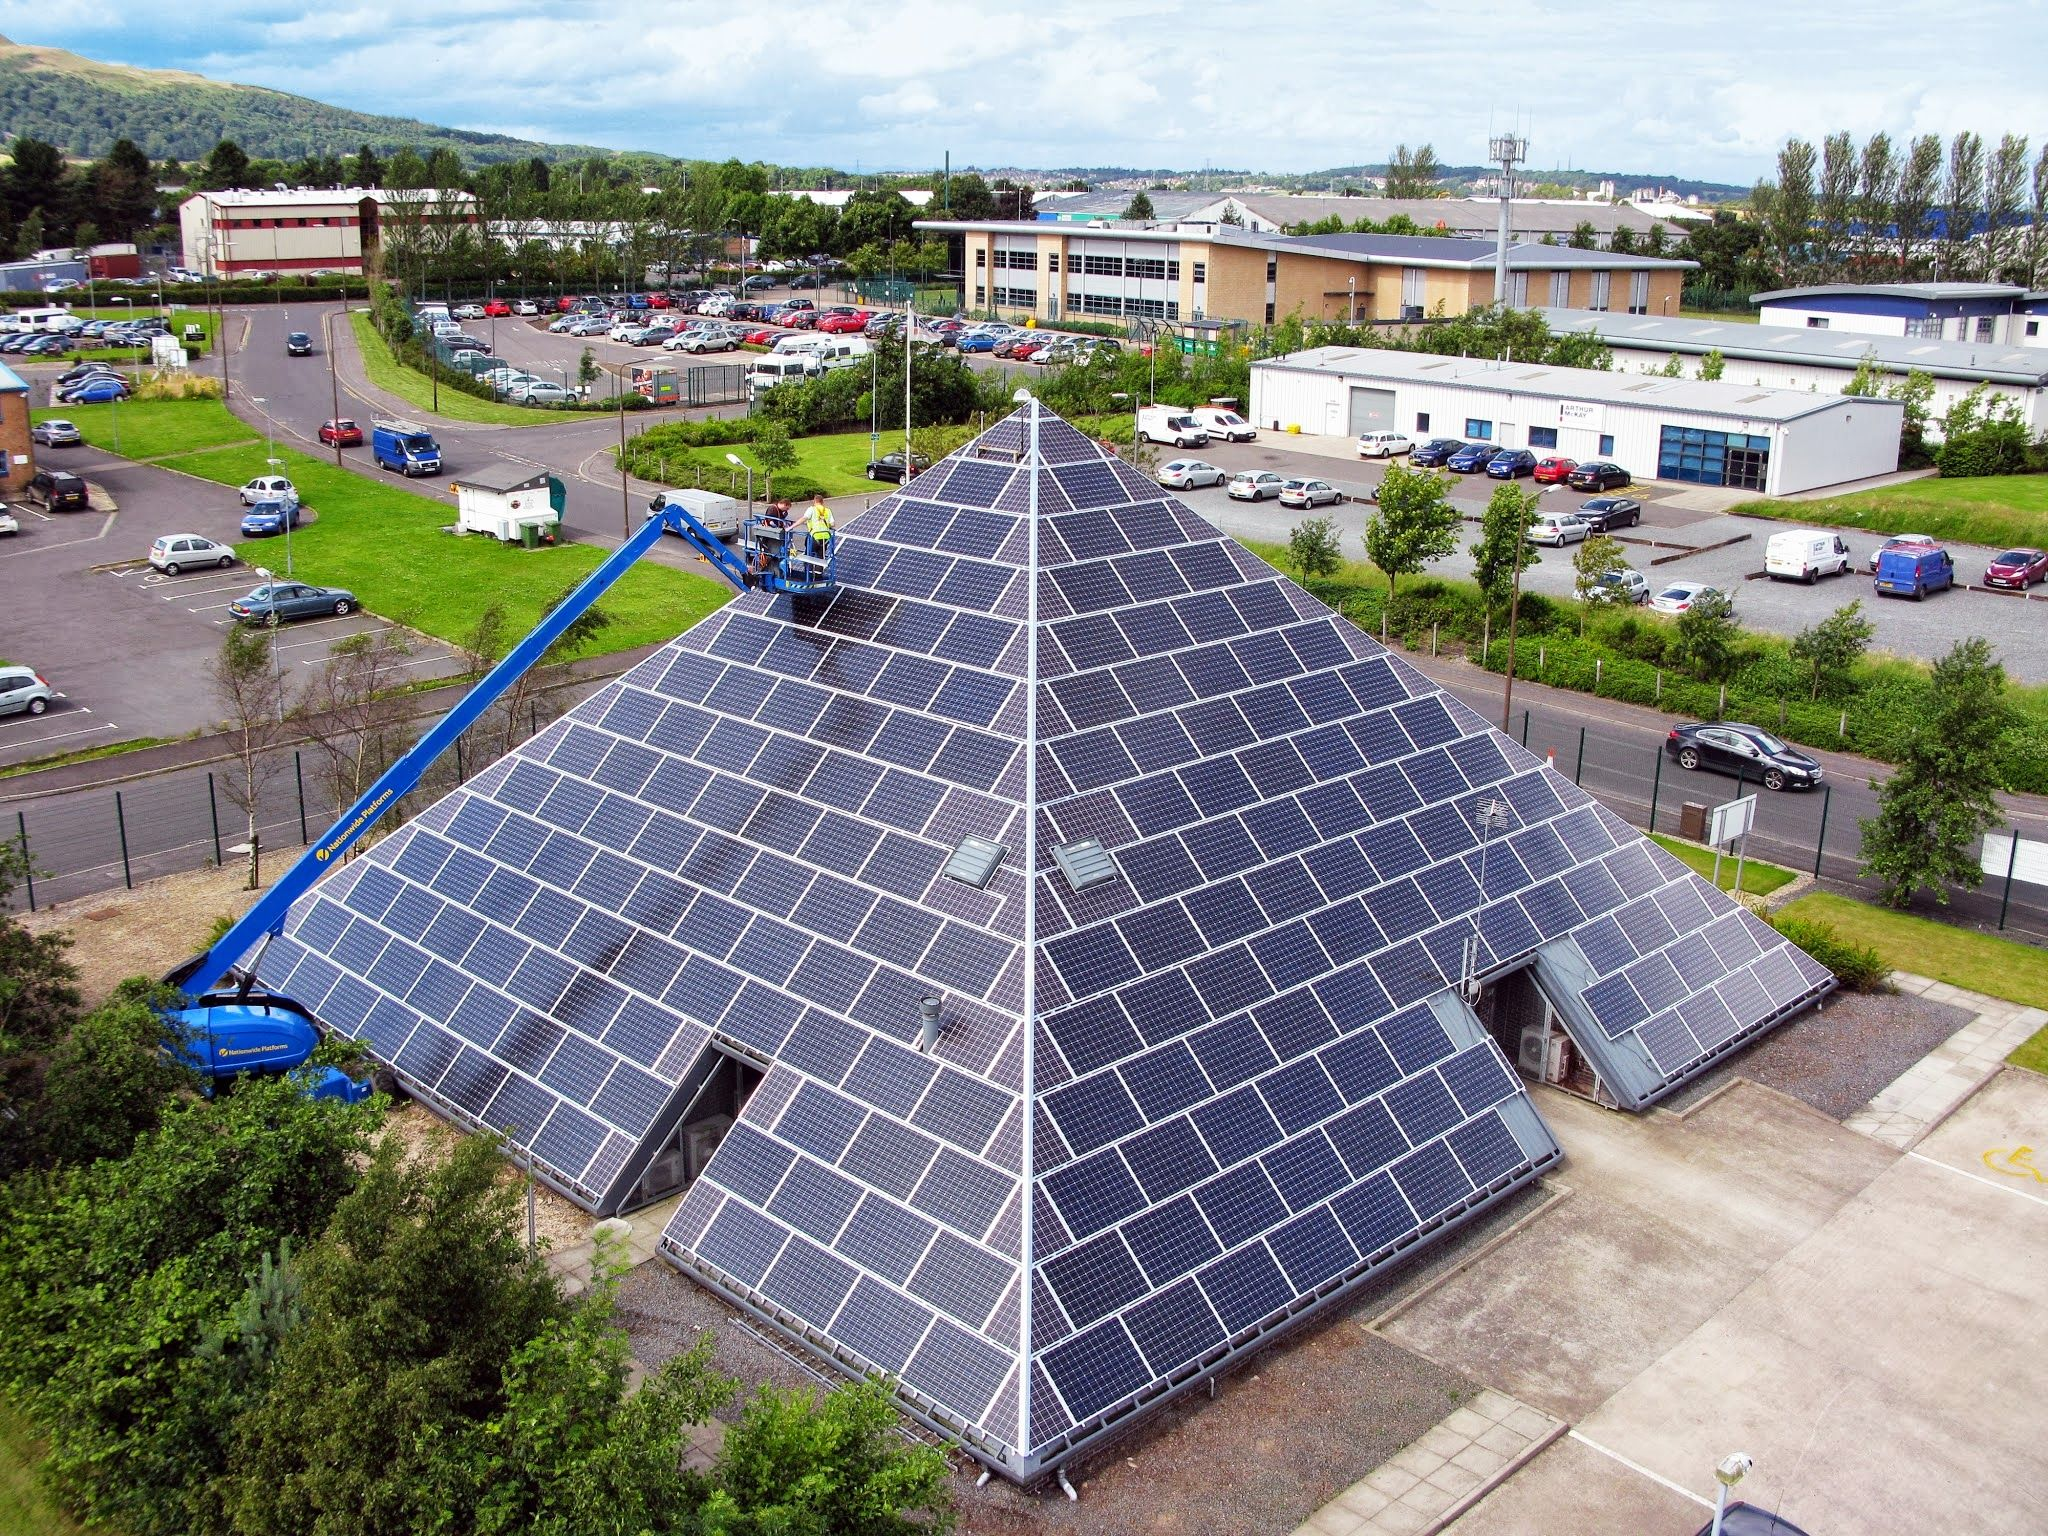 Office Building In England Covered In Solar Panels Fake Panels Used On Edges To Complete The Look Pyramid House Solar Pyramids